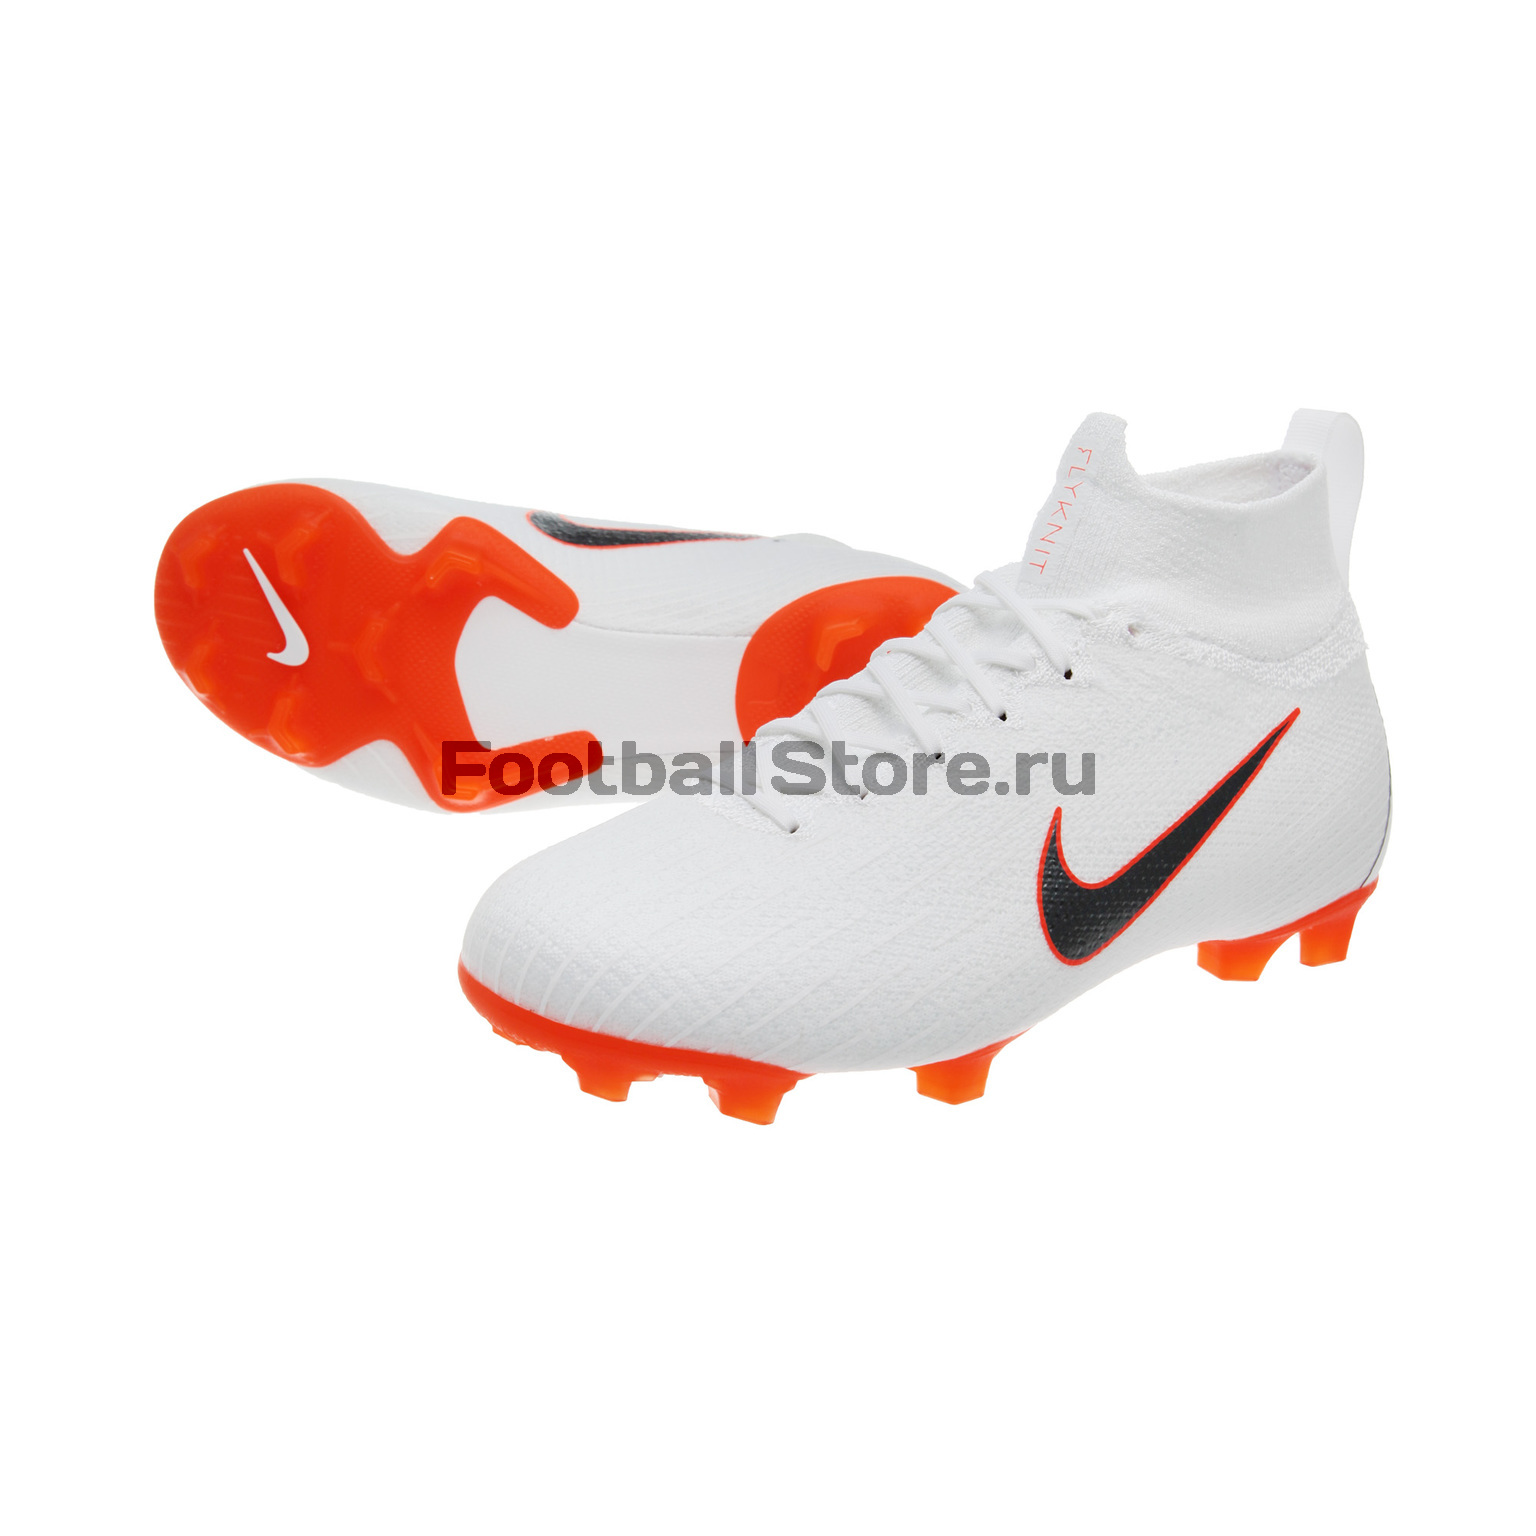 Бутсы детские Nike Superfly 6 Elite FG AH7340-107 бутсы nike superfly 6 elite ag pro ah7377 107